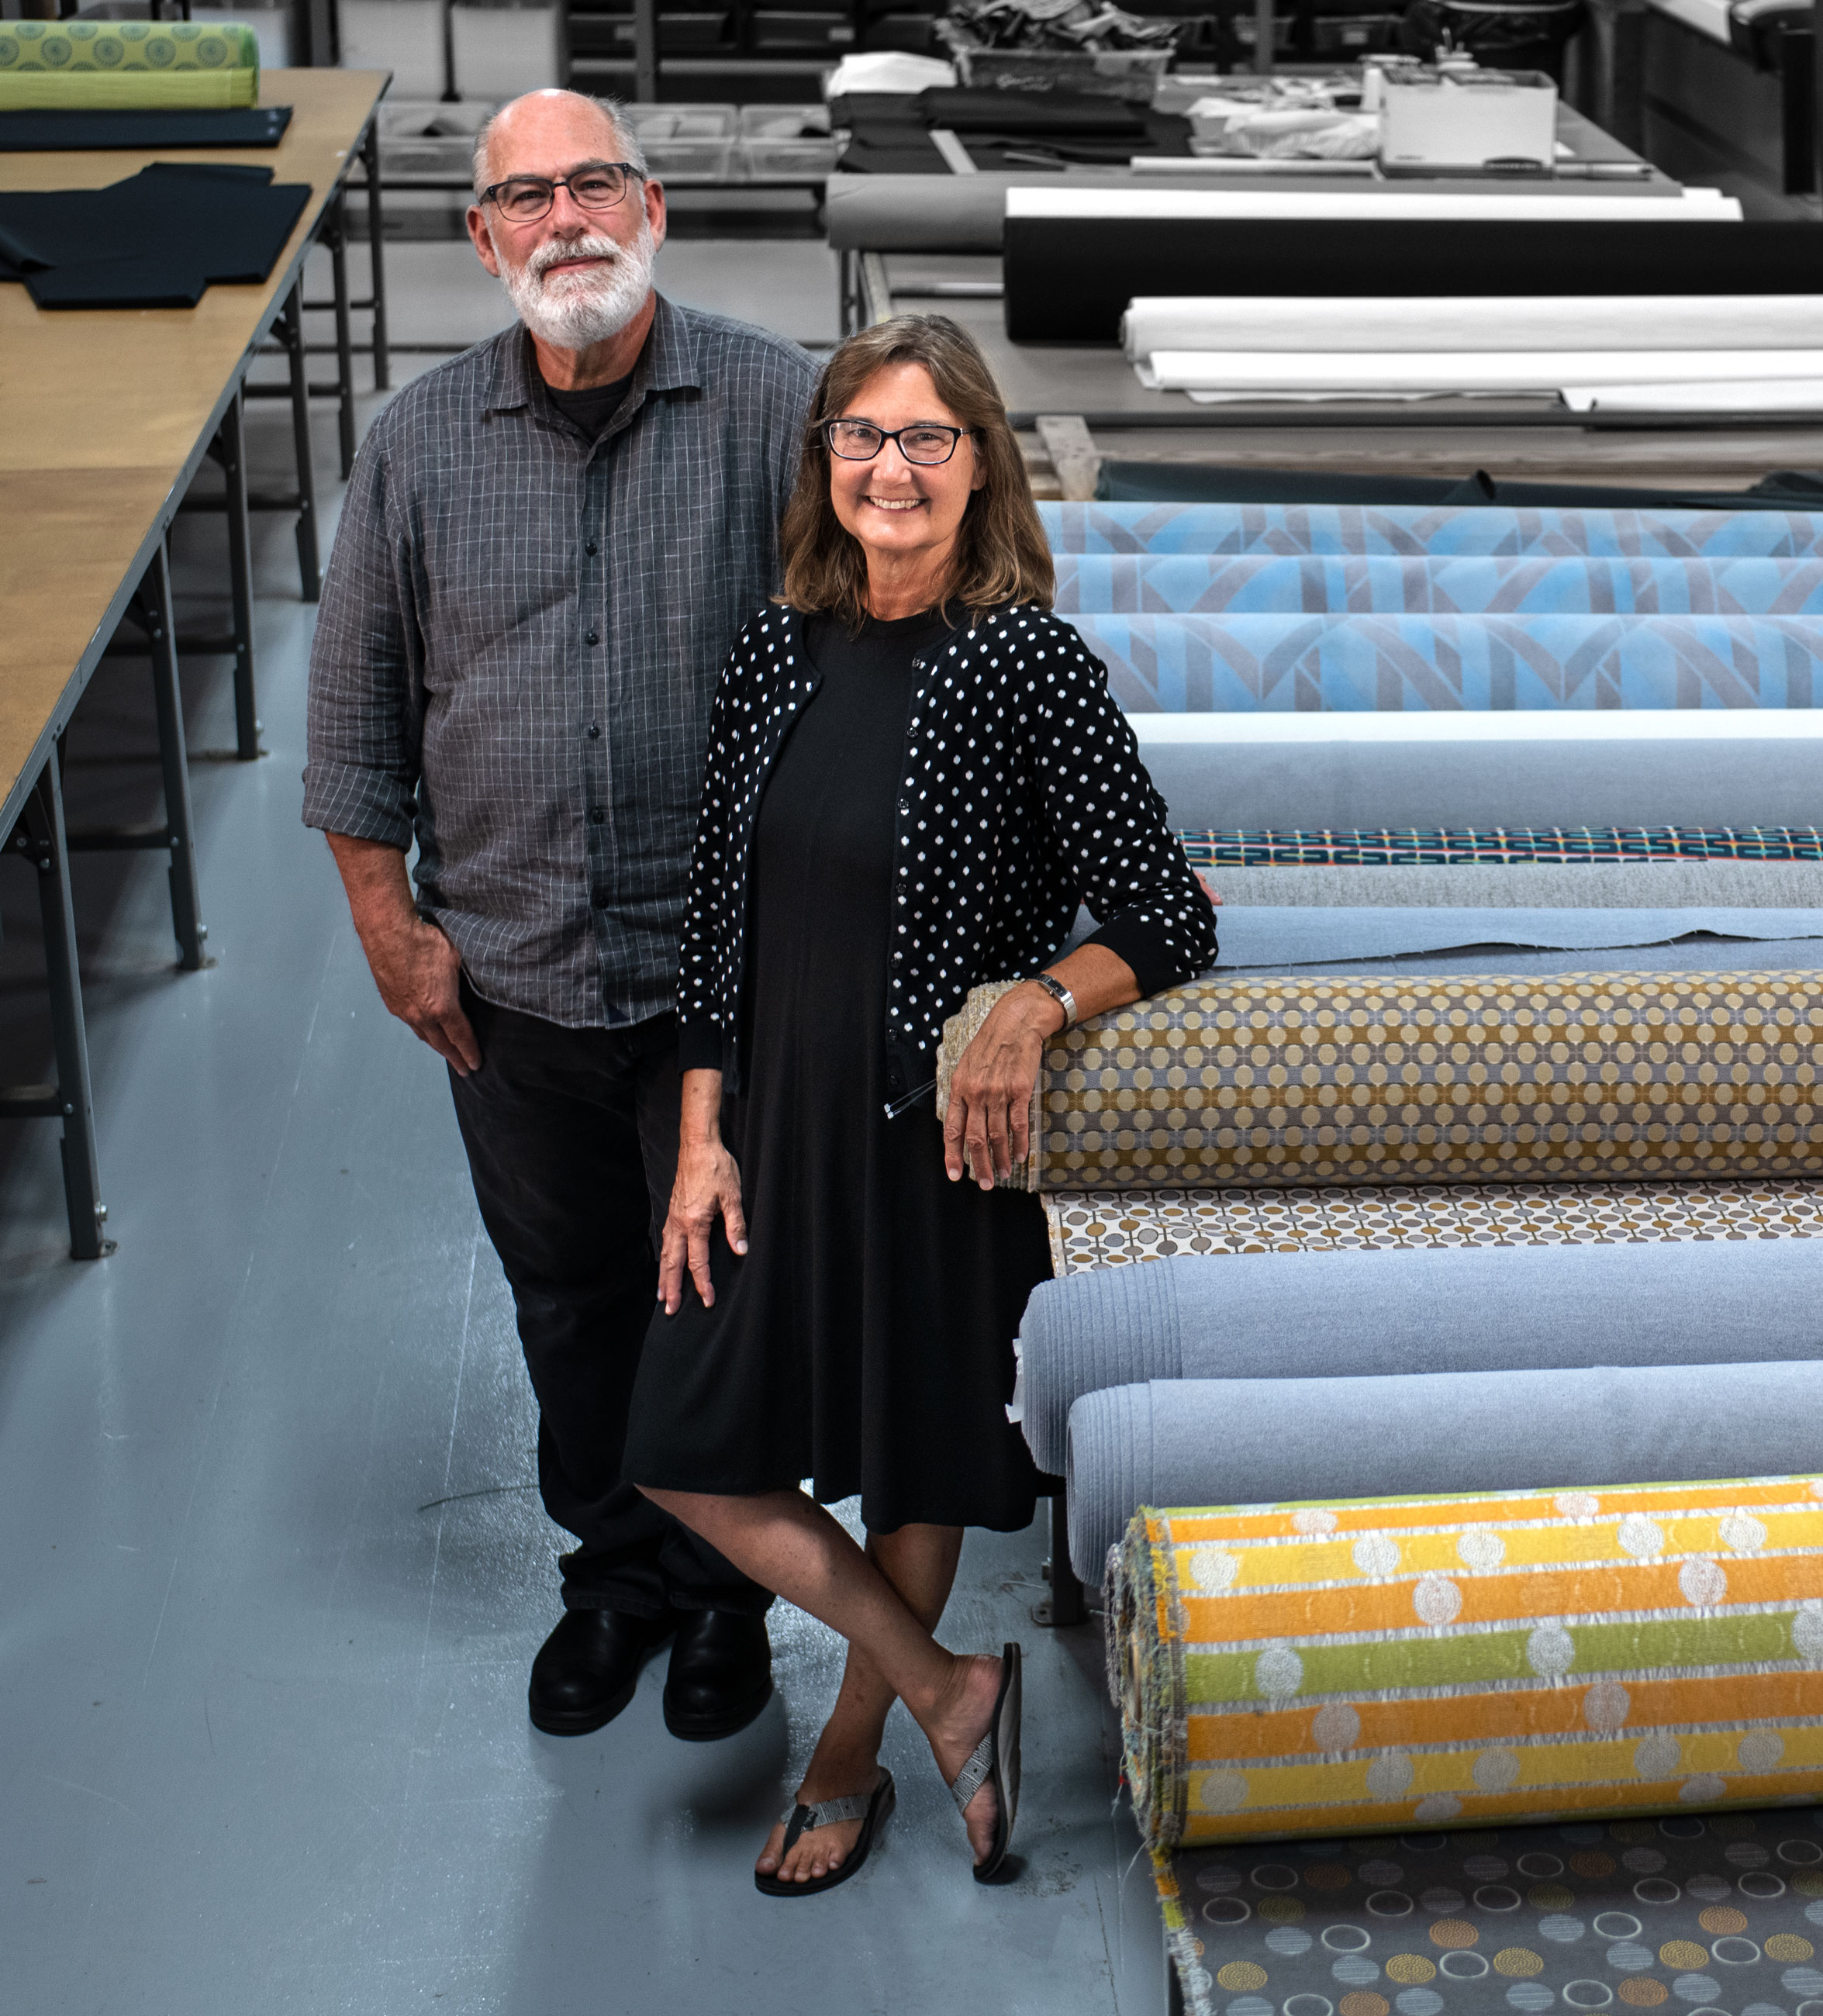 Brace and Brenda Wieland , founders and co-owners of  Transformations  Furniture.